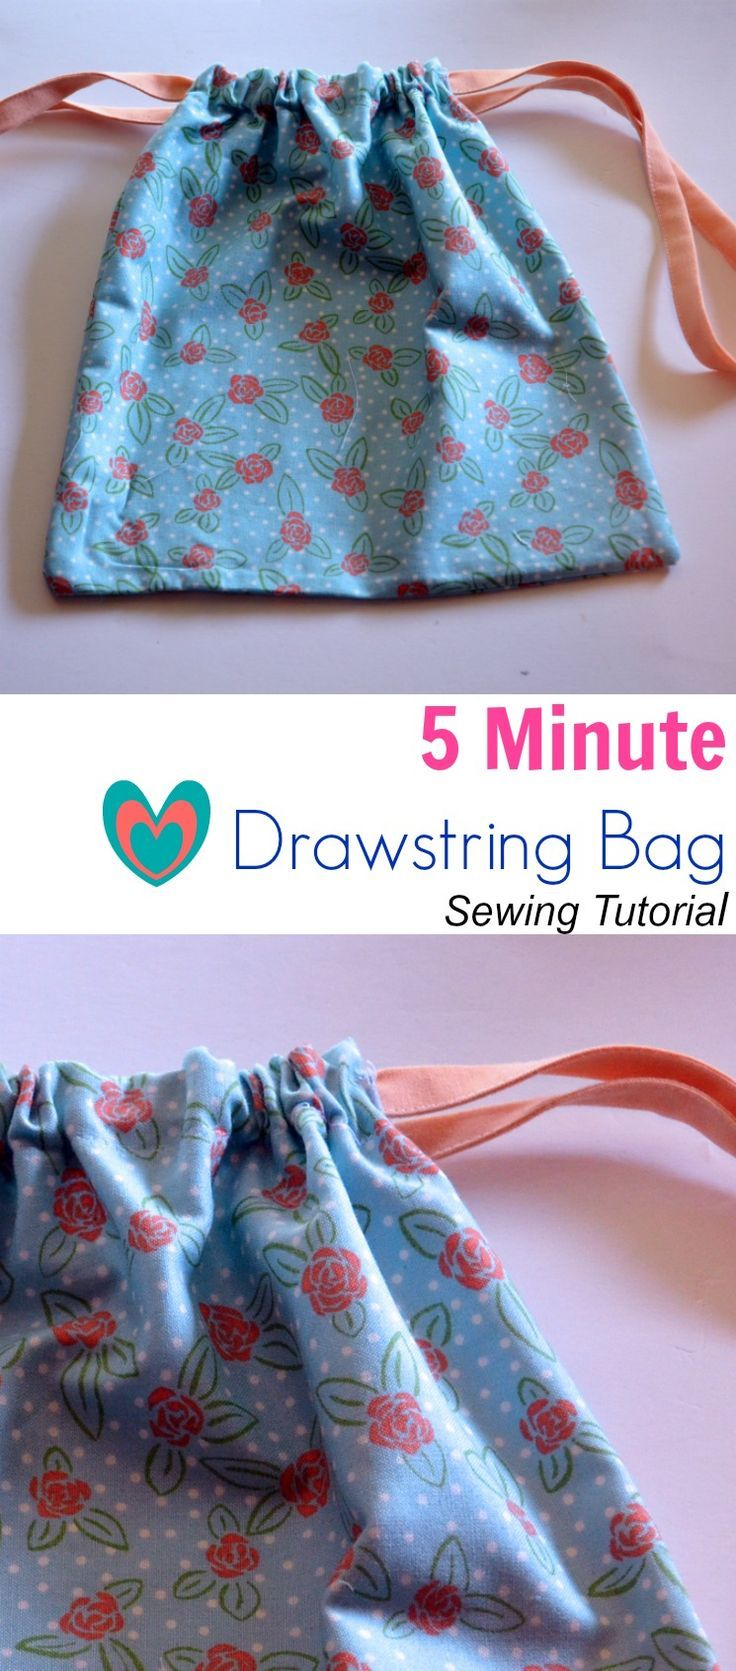 5 minute fabric gift bag tutorial free pattern diy gift bags 5 minute drawstring bag sewing tutorial on the cutting floor printable pdf sewing patterns and tutorials for women jeuxipadfo Image collections